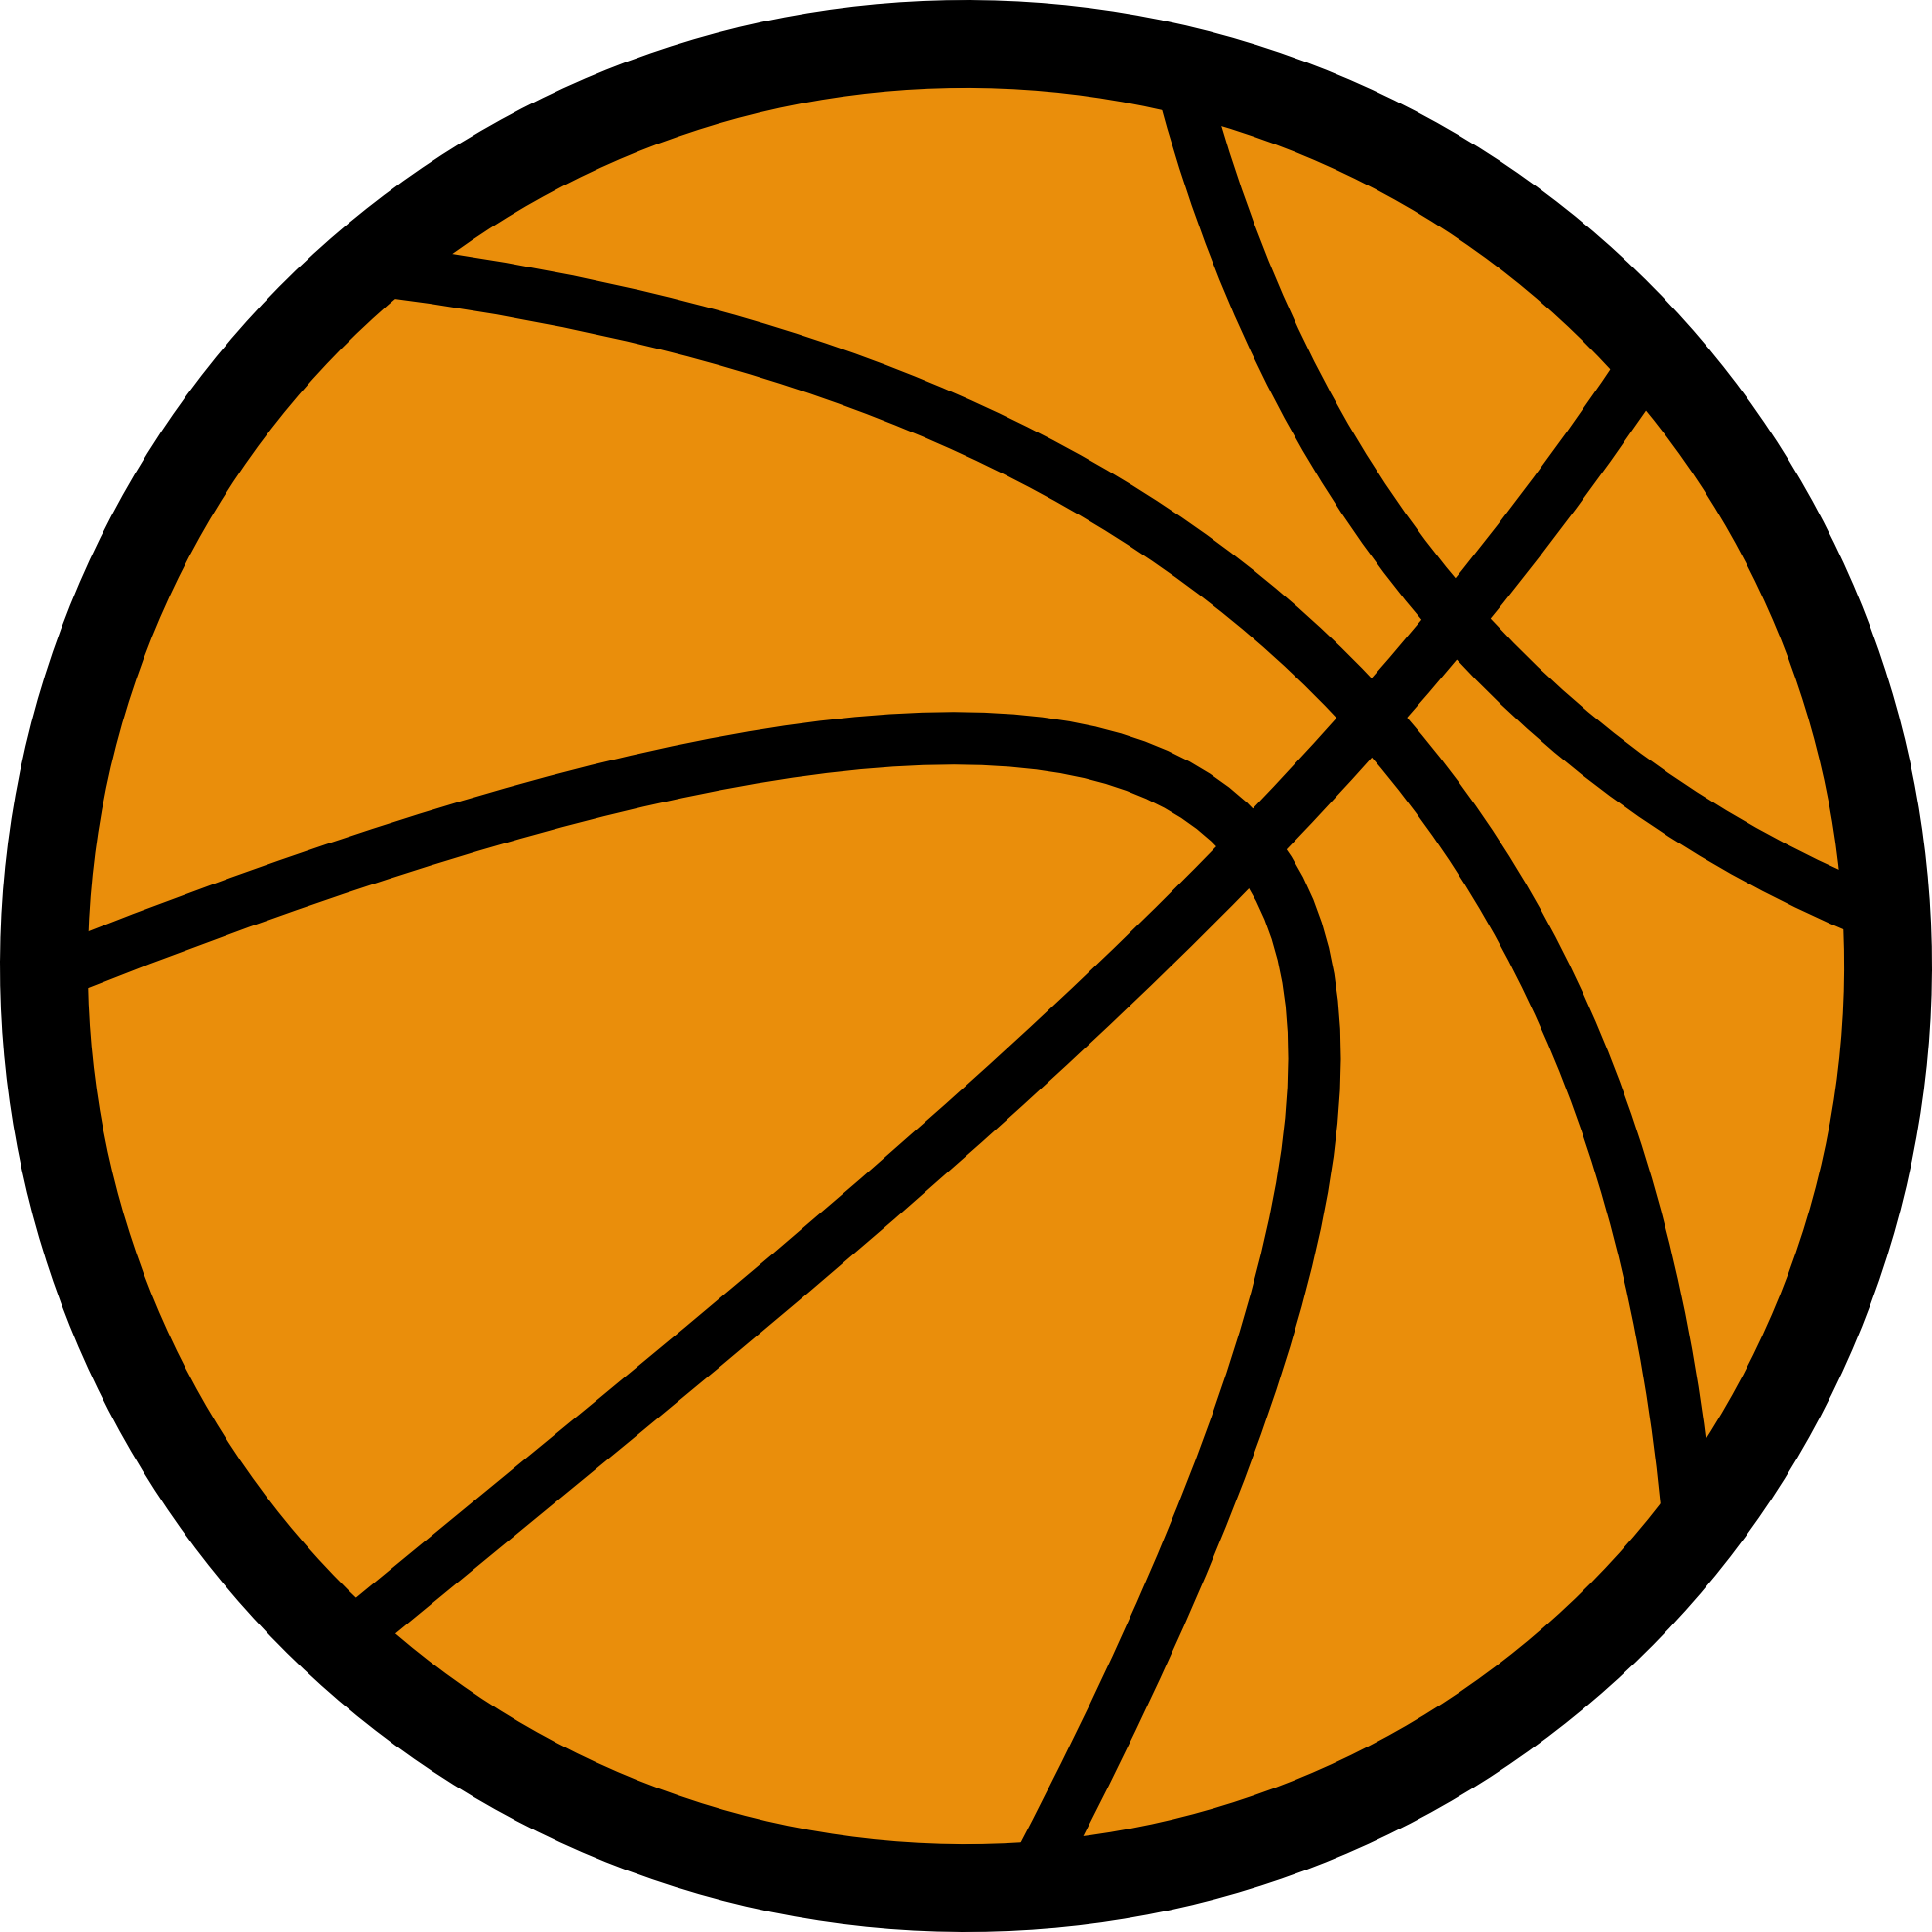 15 Basketball Vector Graphics Images